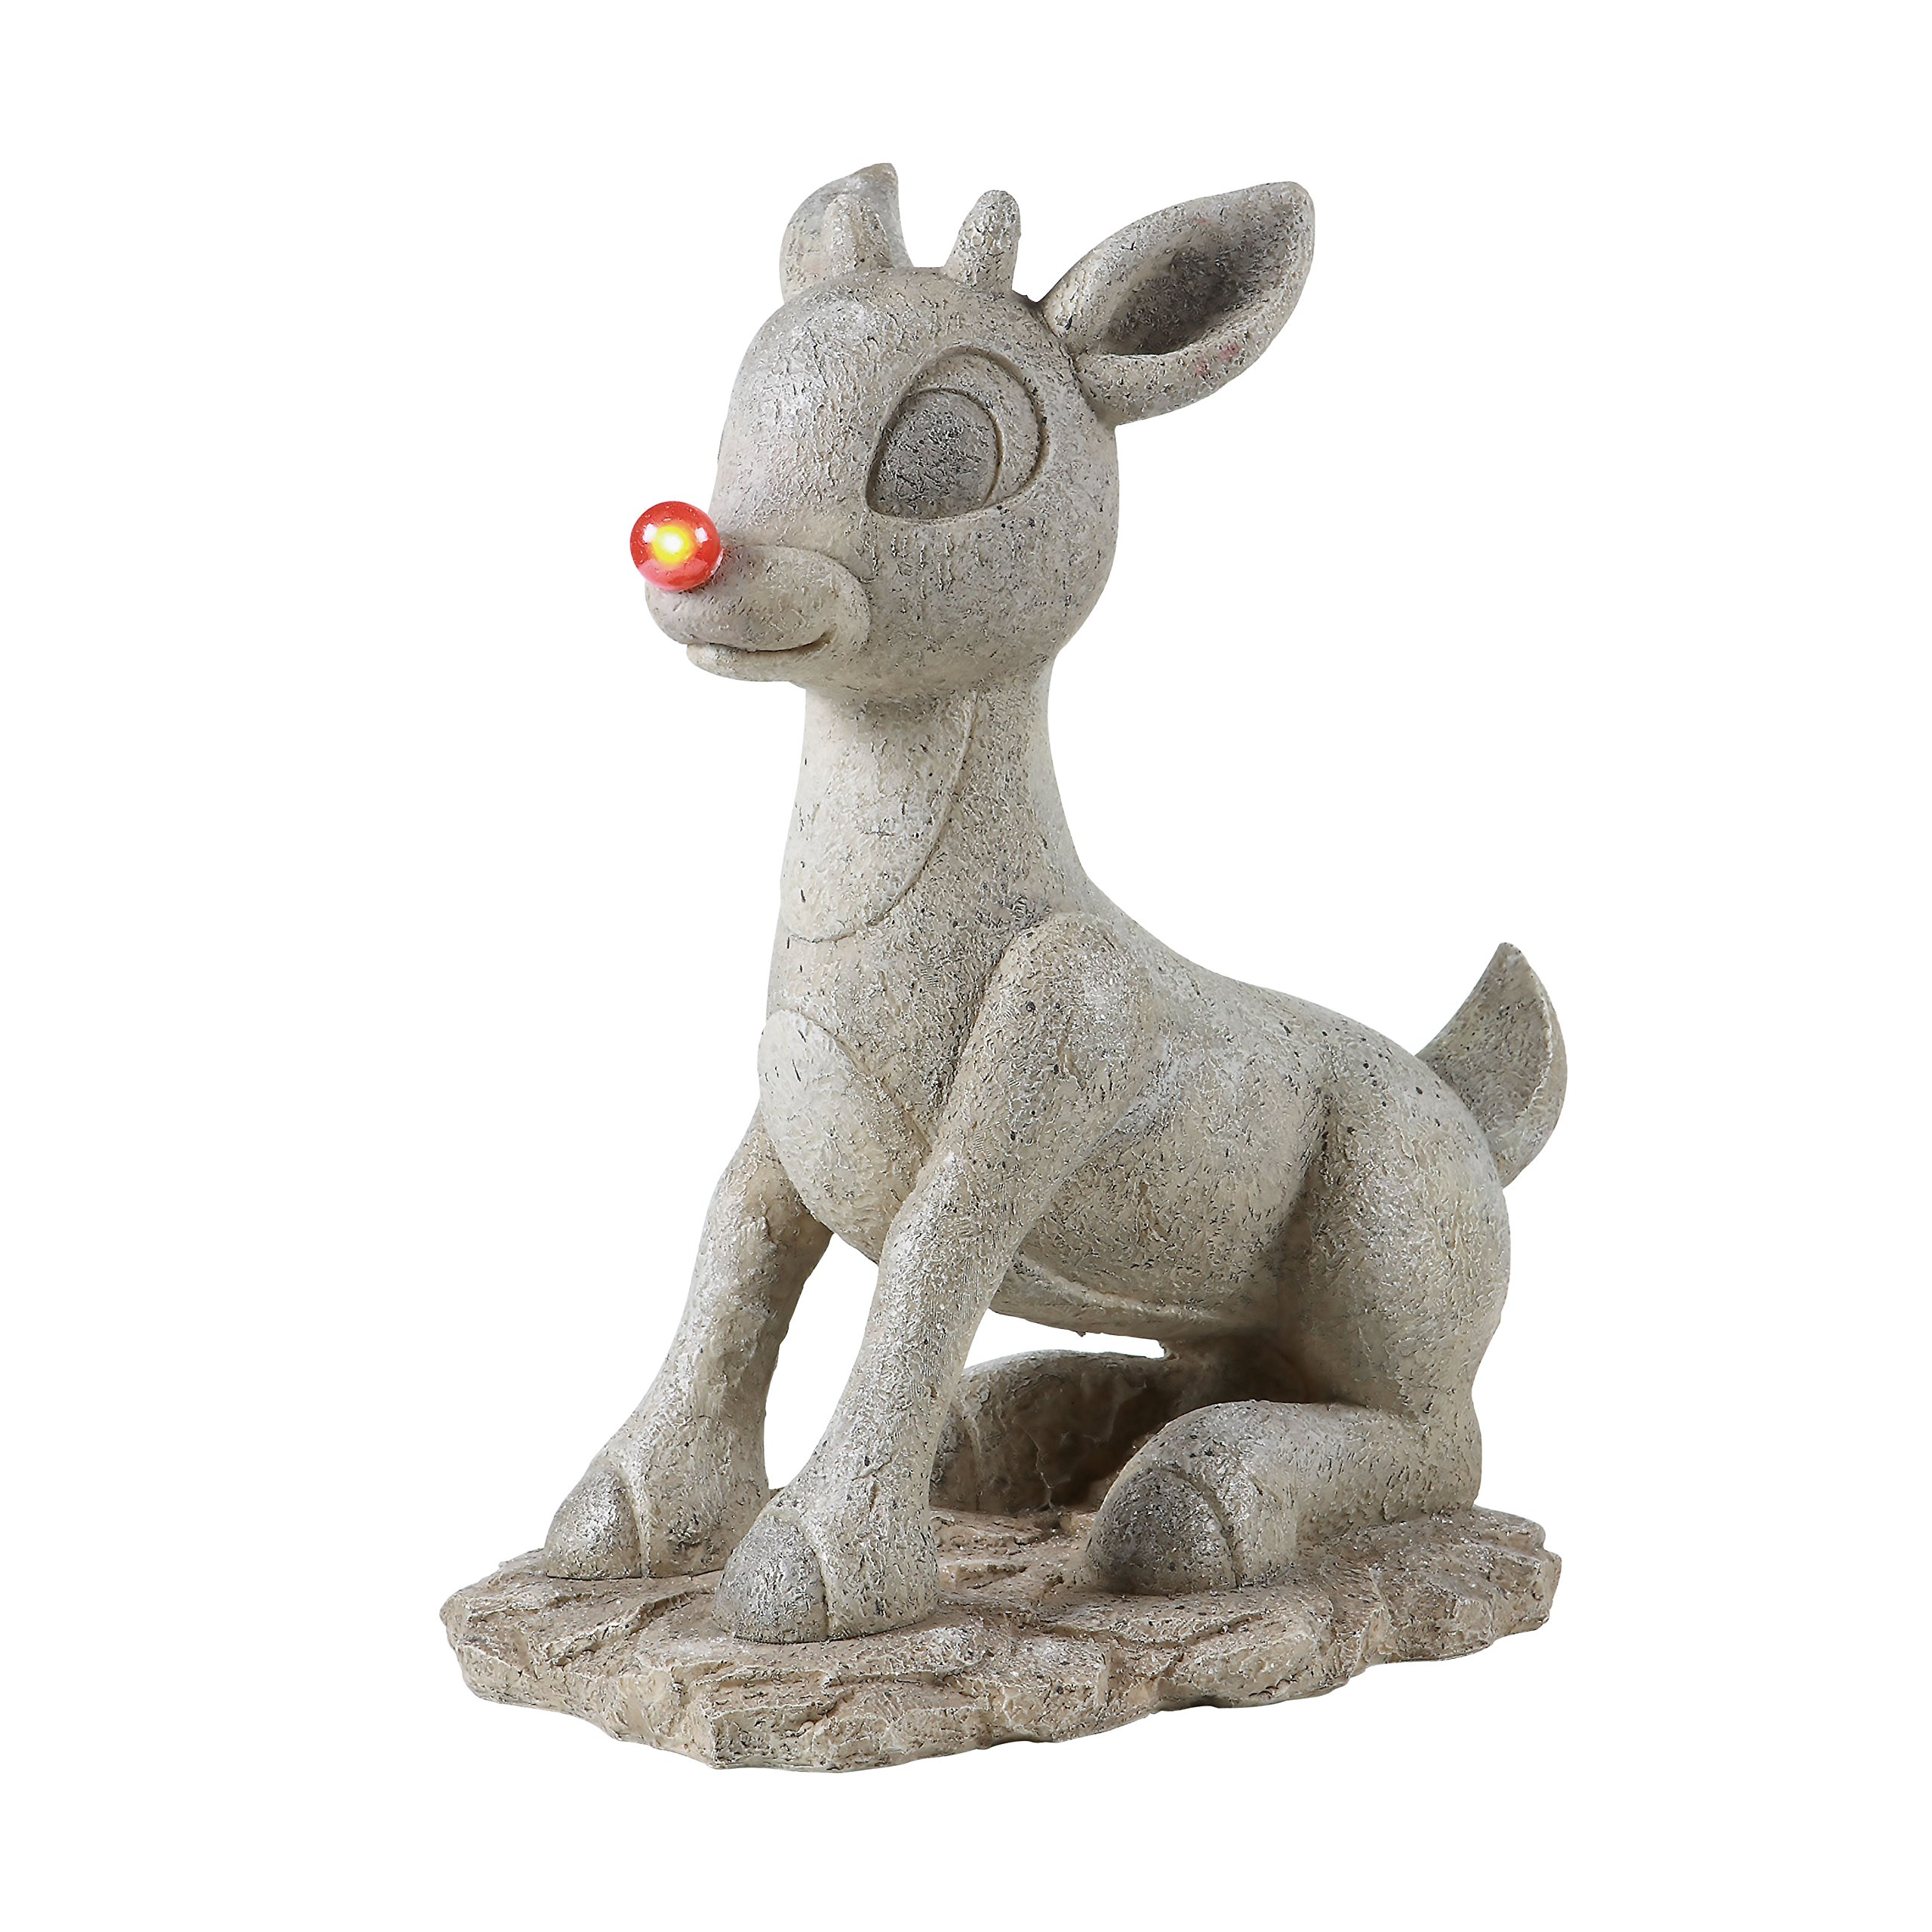 Rudolph Solar Powered Statue with Light Up Red Nose, 18 by 15.13-Inch by Rudolph